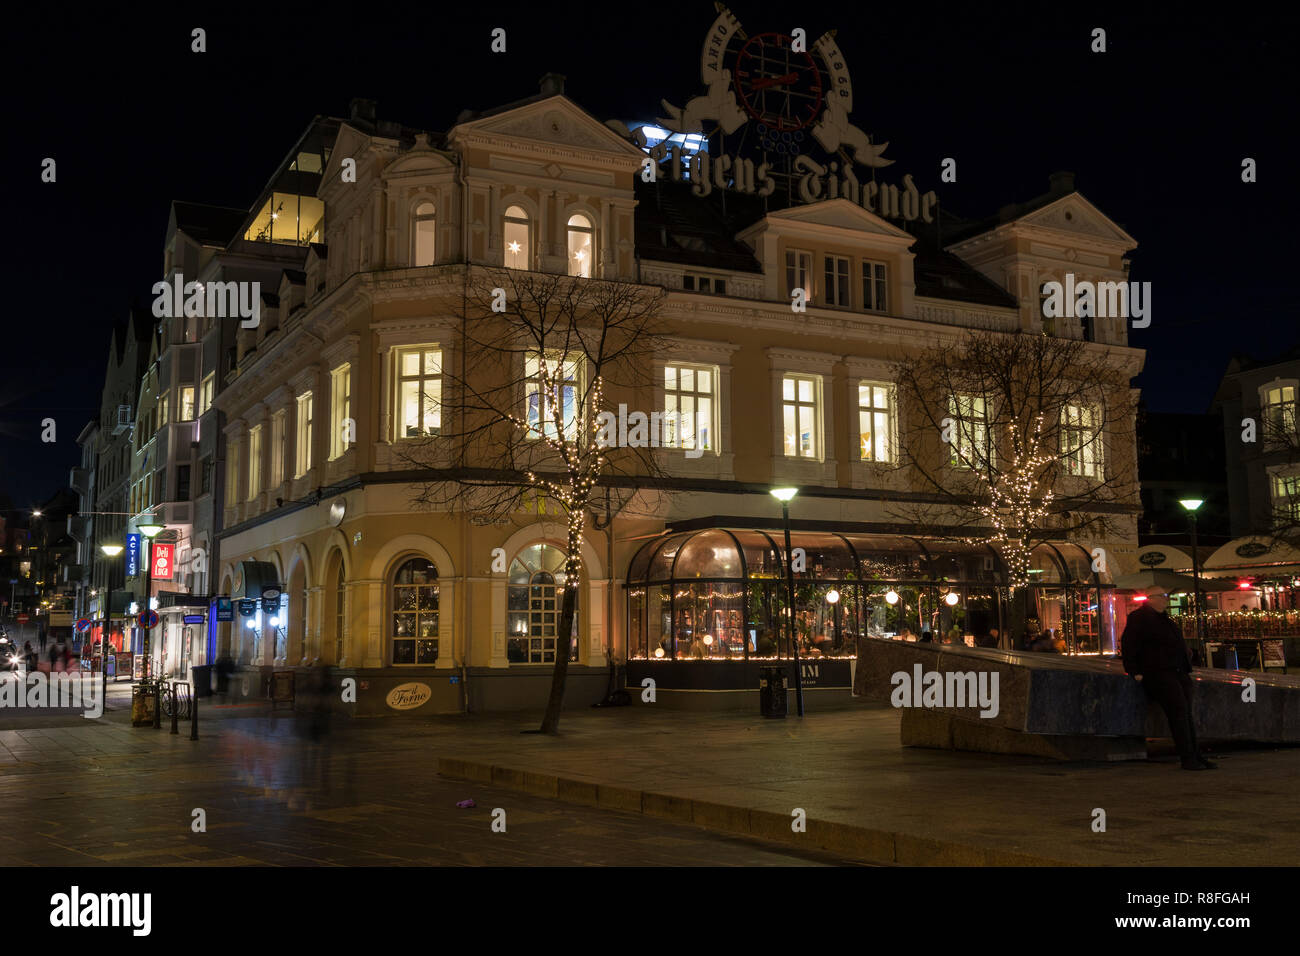 Christmas illuminated trees and building at Kong Olav Vs Plass 4 in downtown Bergen, Norway. - Stock Image